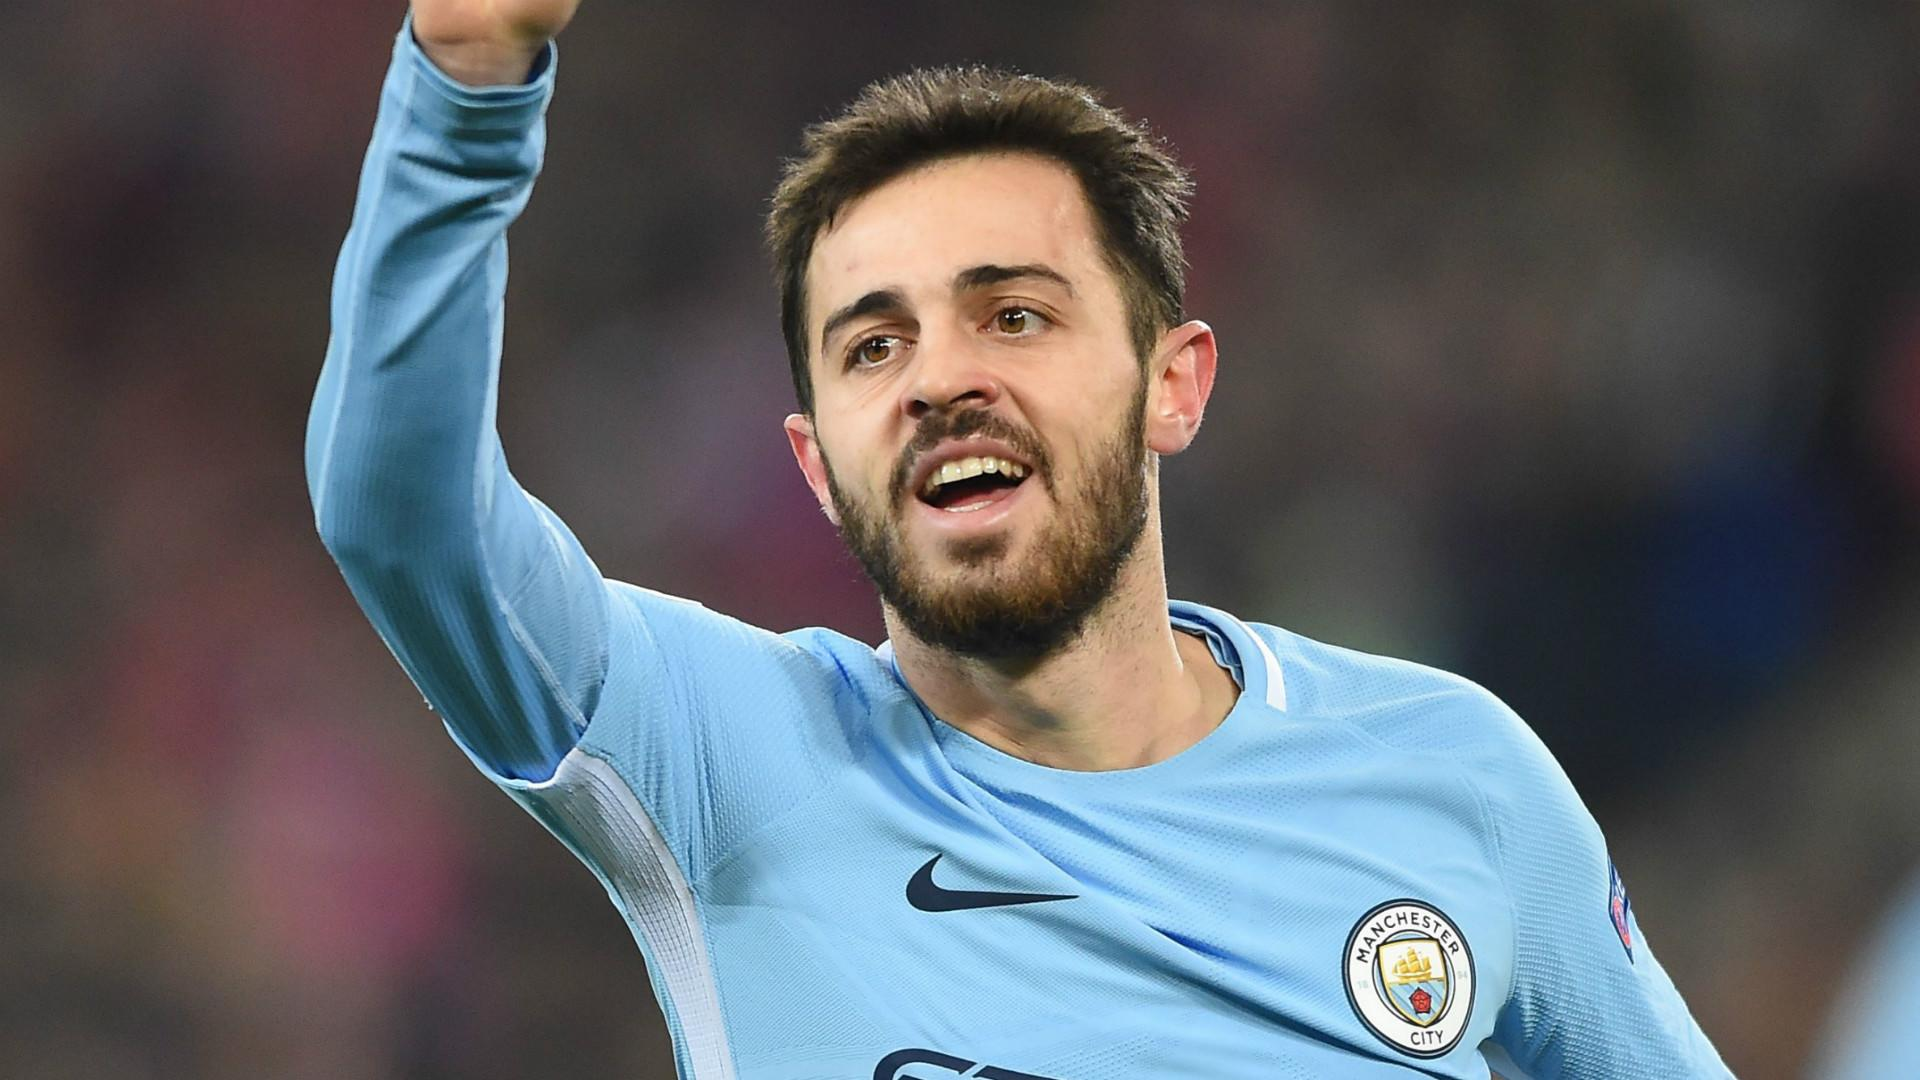 Pep Guardiola Makes Transfer Vow Over Manchester City's